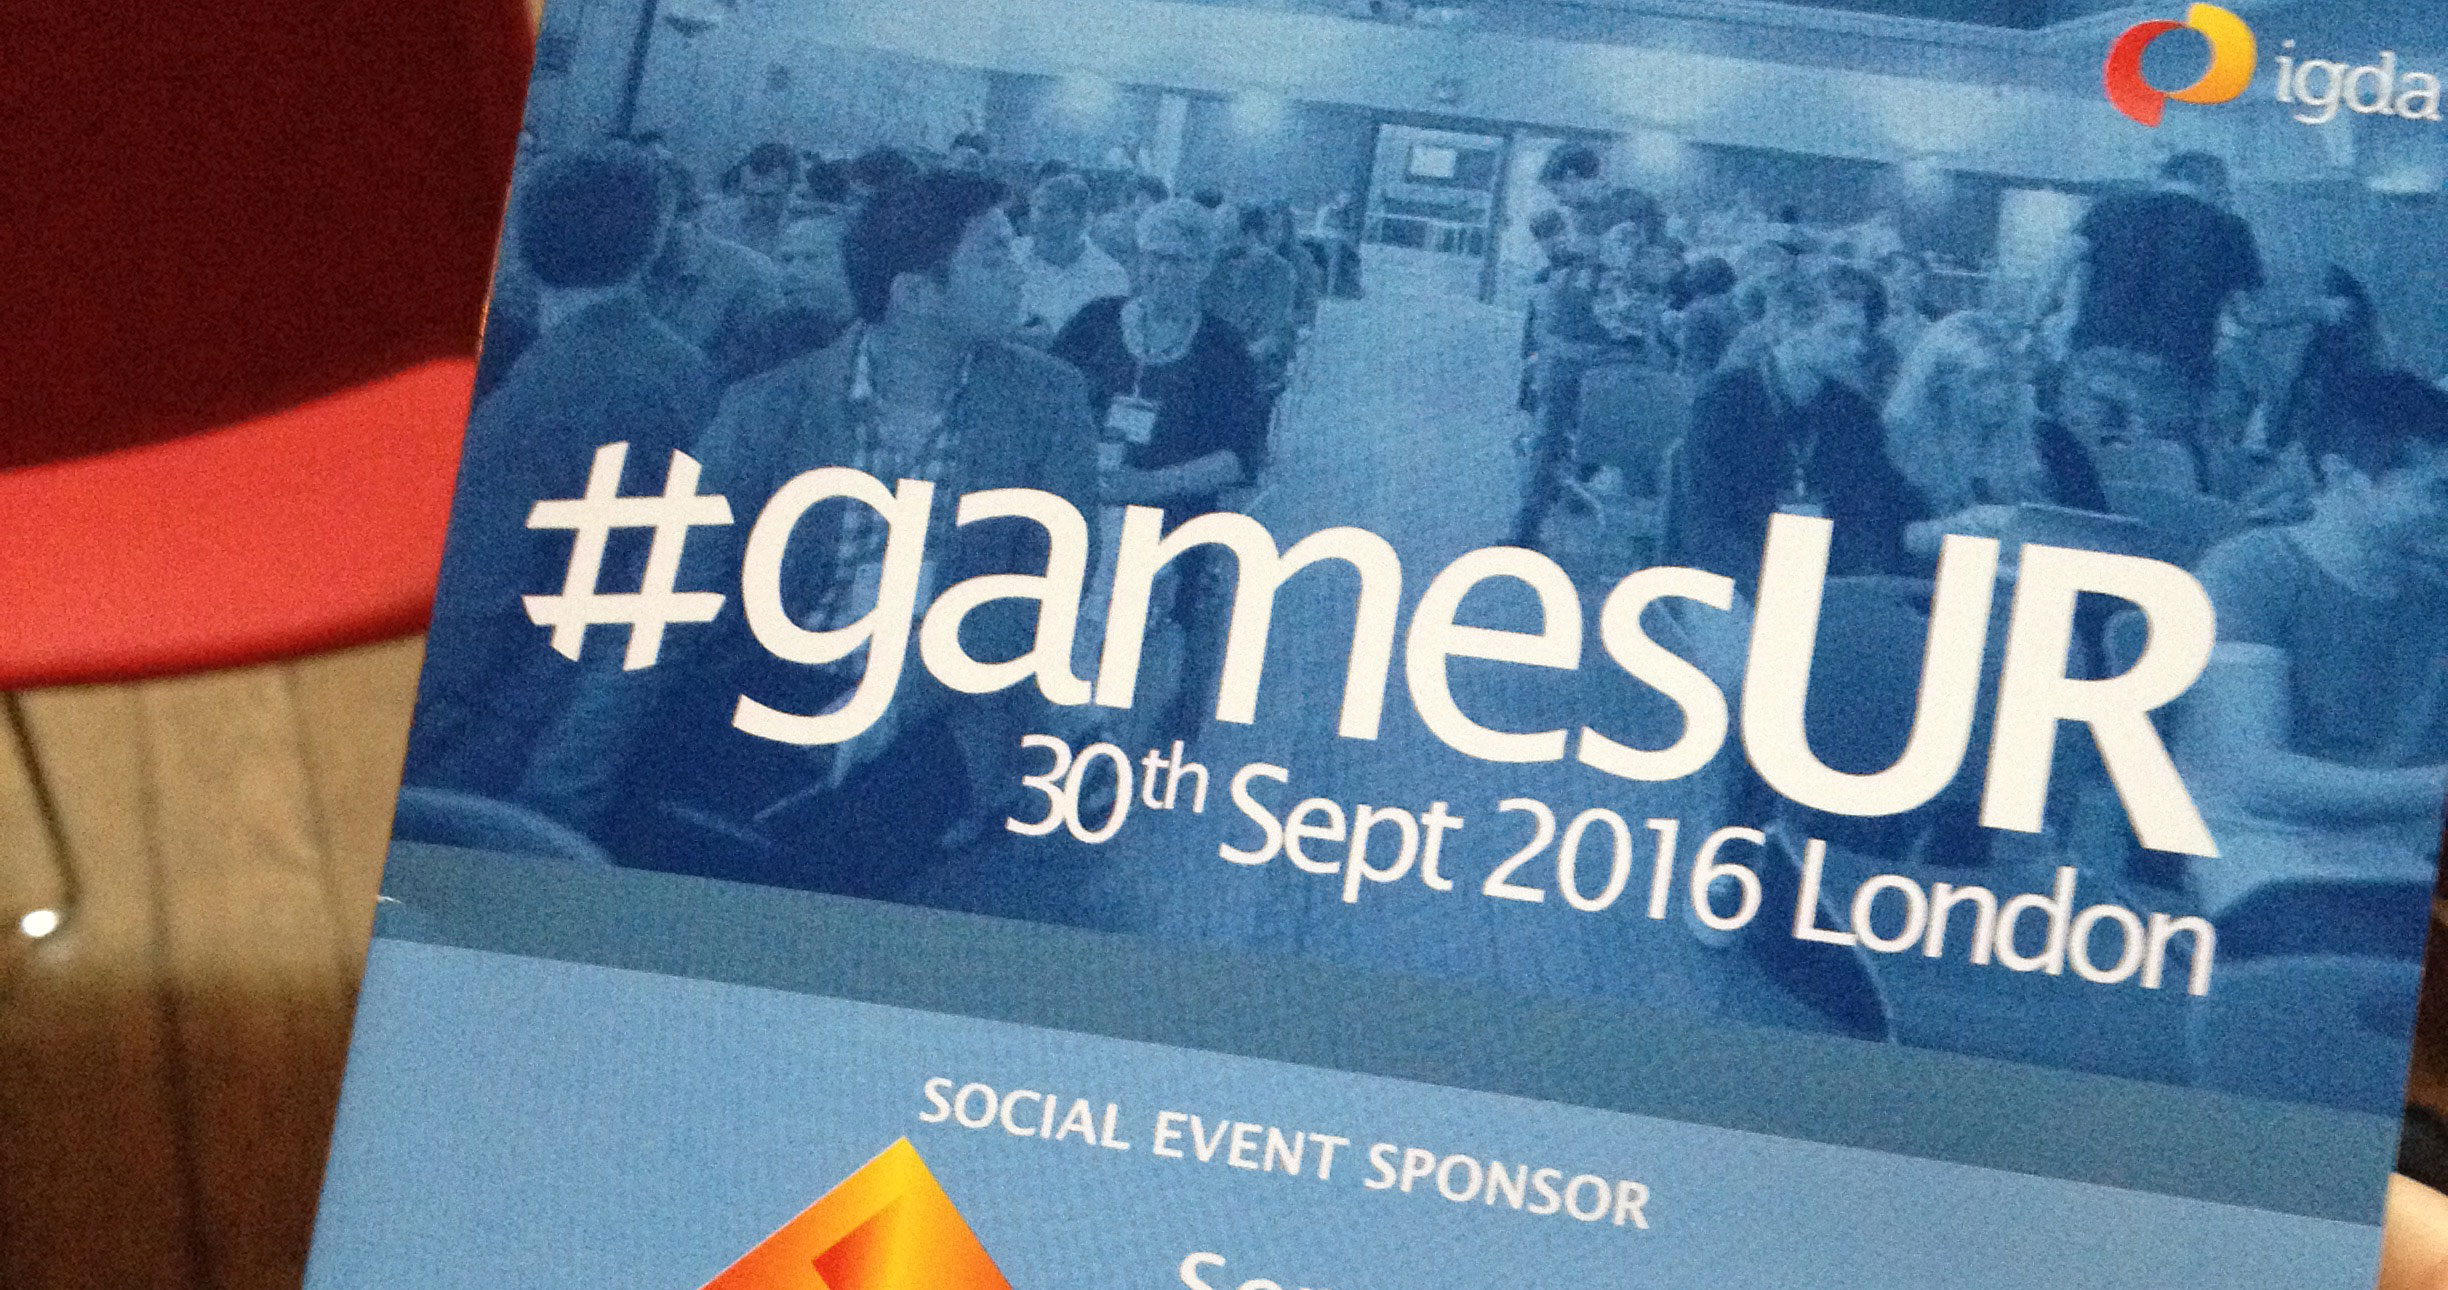 15 Lessons from #gamesUR conference